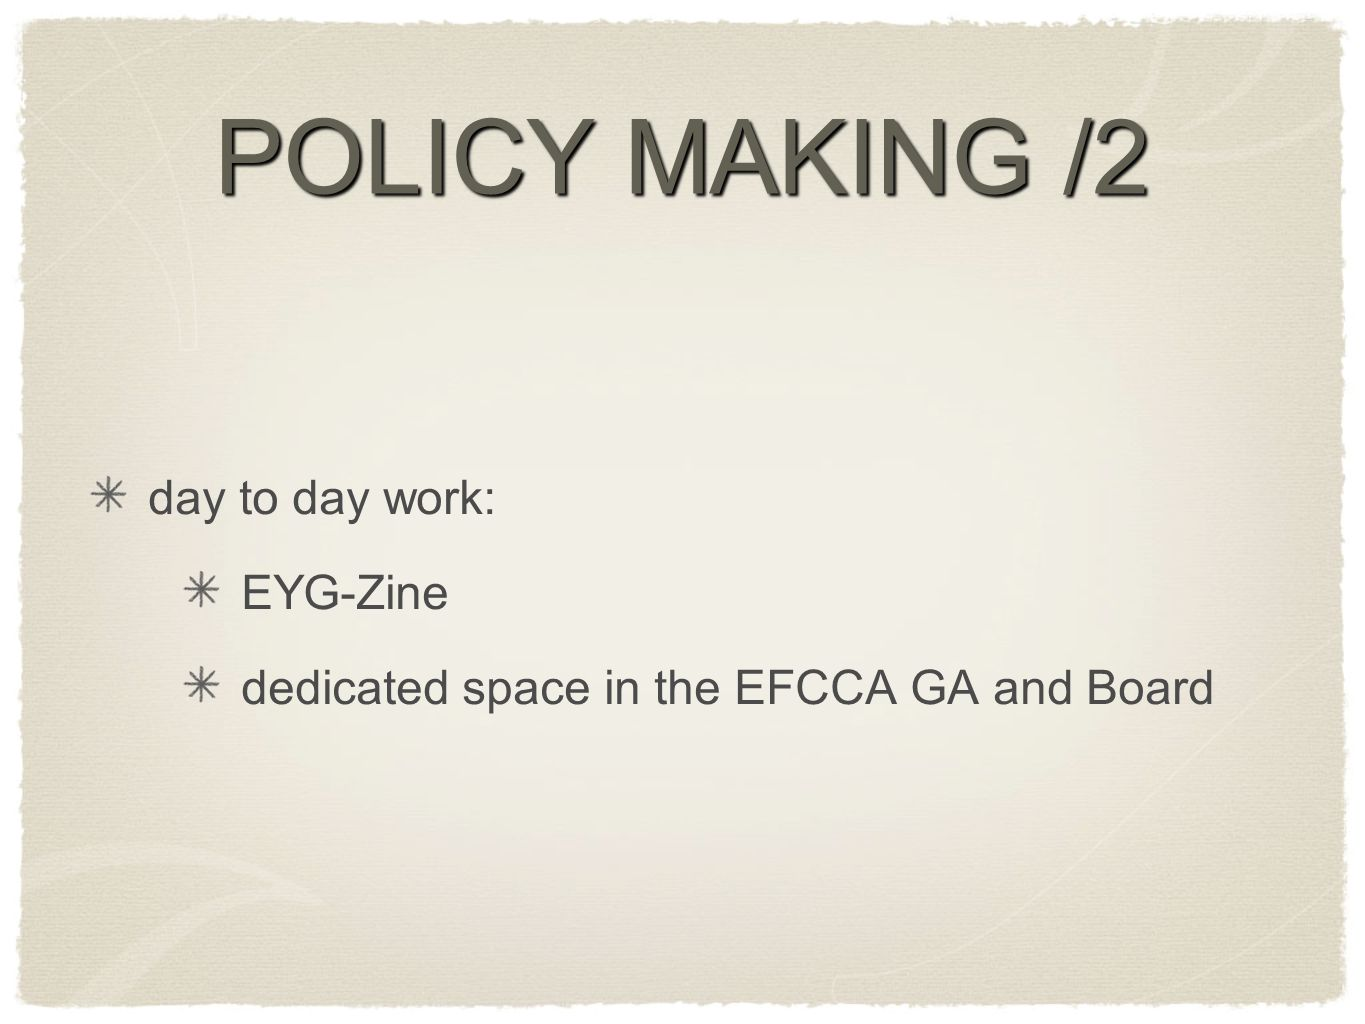 POLICY MAKING /2 day to day work: EYG-Zine dedicated space in the EFCCA GA and Board